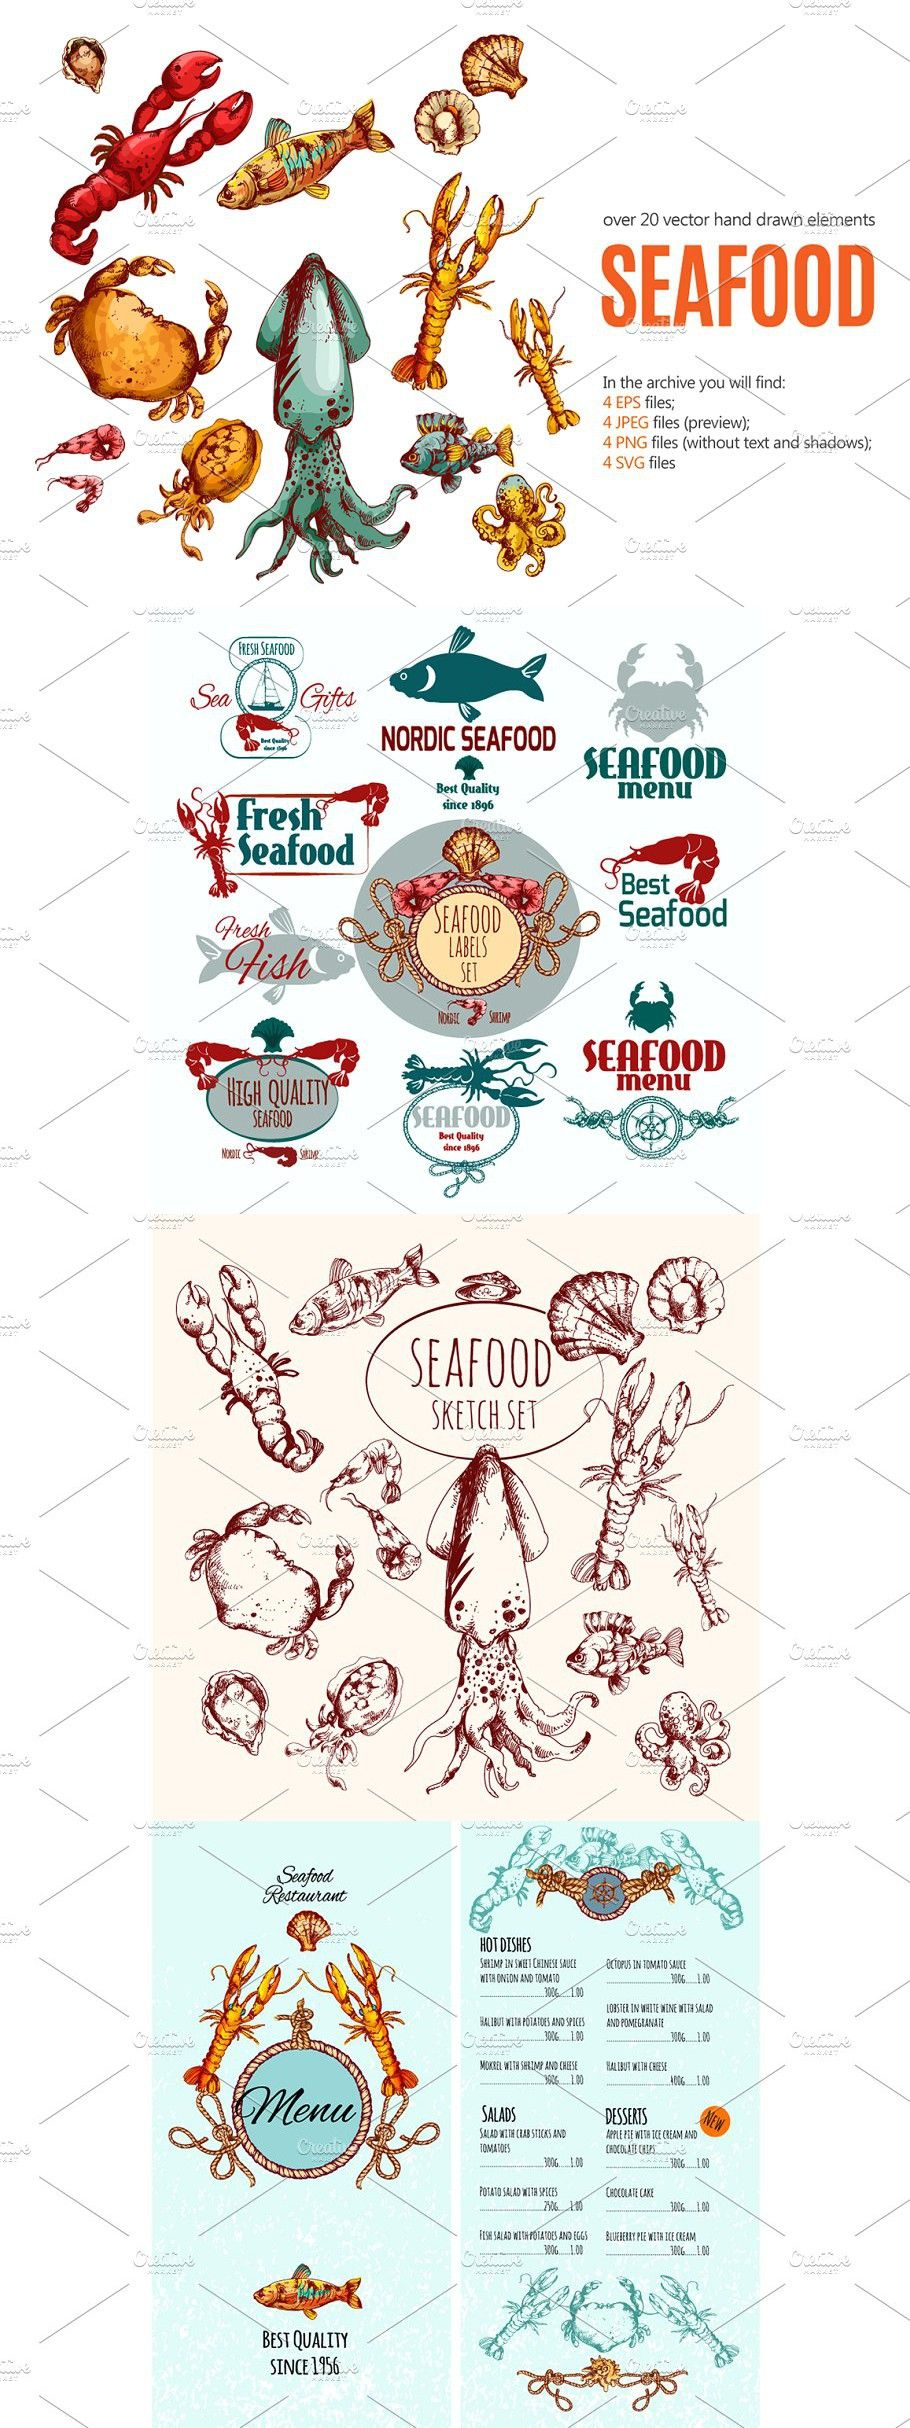 Seafood Sketch Set in 2020 How to draw hands, Menu